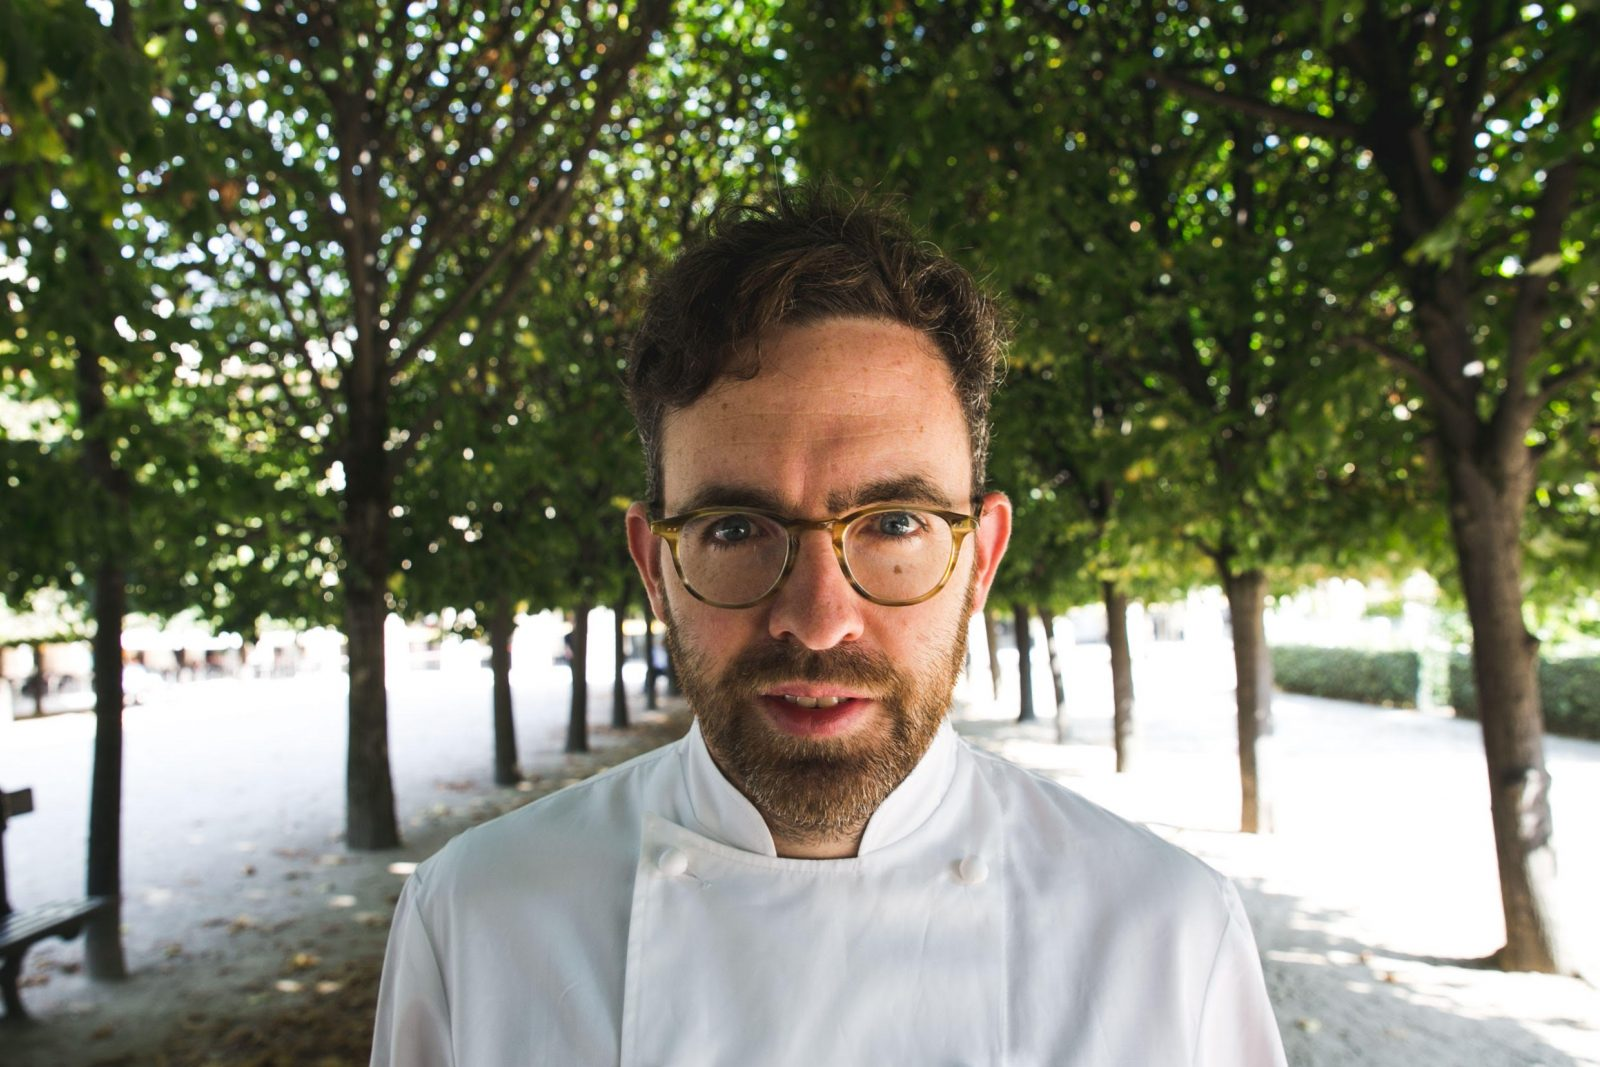 An American in Paris: How Chef Braden Perkins Crashed The Paris Restaurant Scene